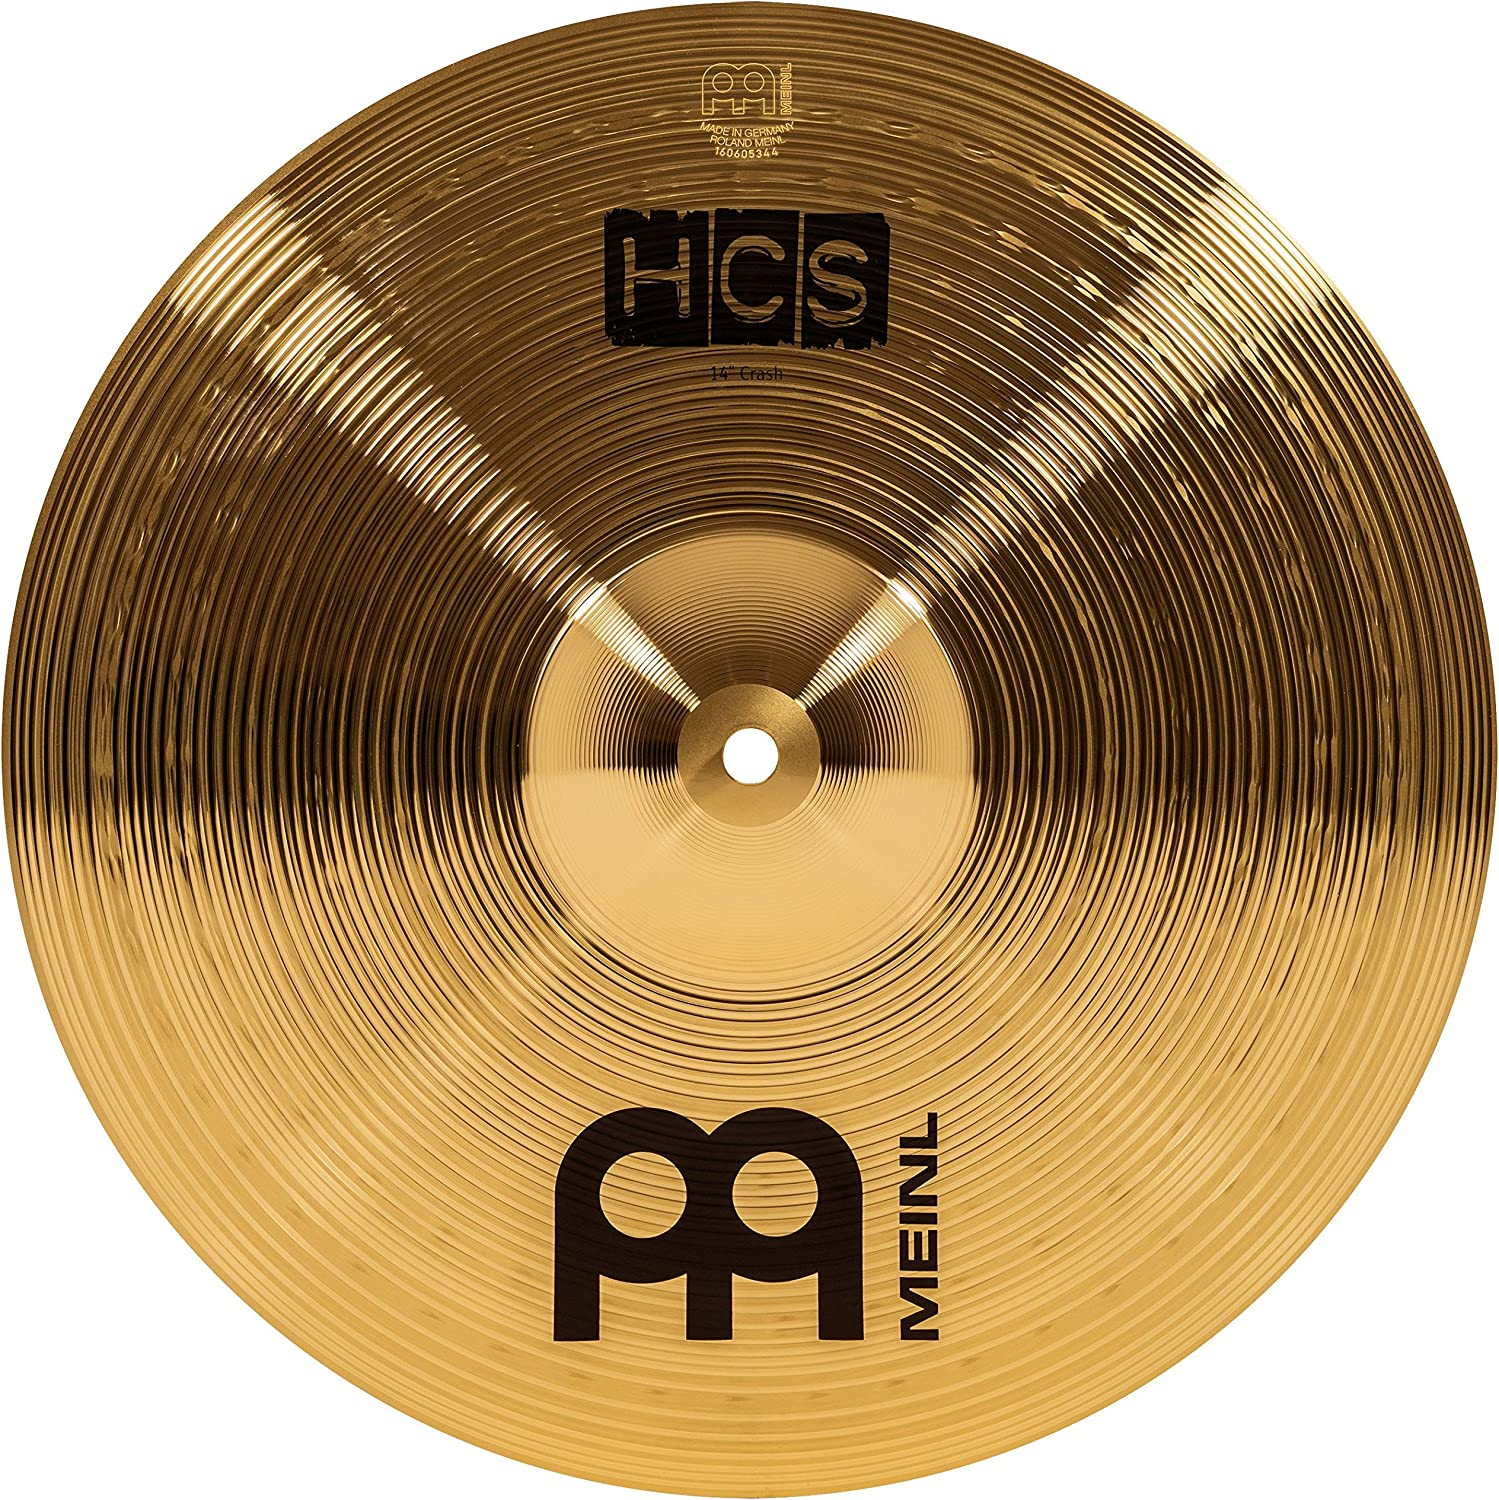 """Meinl 14"""" Crash Cymbal – Hcs Traditional Finish Brass For Drum Set"""